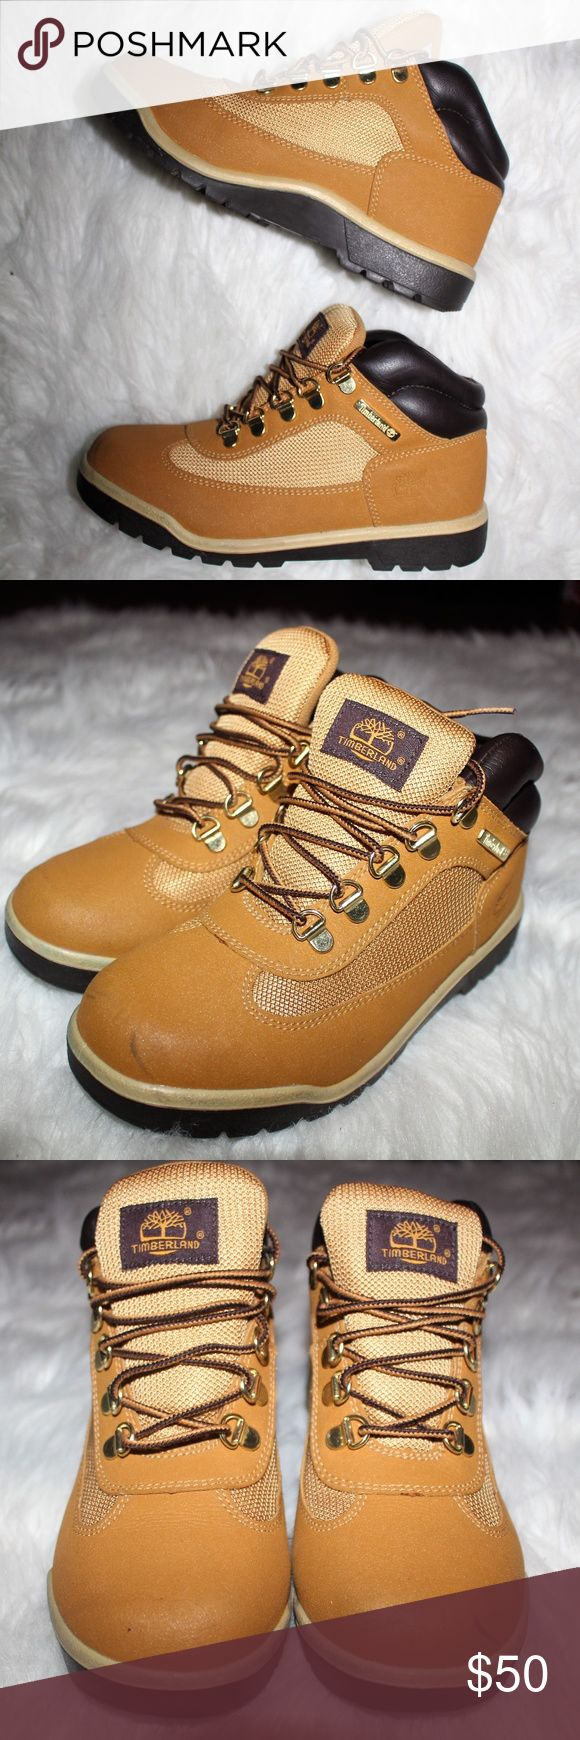 "Timberland | Wheat Field Boots (Boys 5/Women 6.5) ""Weatherproof."" Timberland Field Boots. Small scuff on the front left shoe (see pictures) Excellent condition aside from that. Only worn a few times.   Brand 